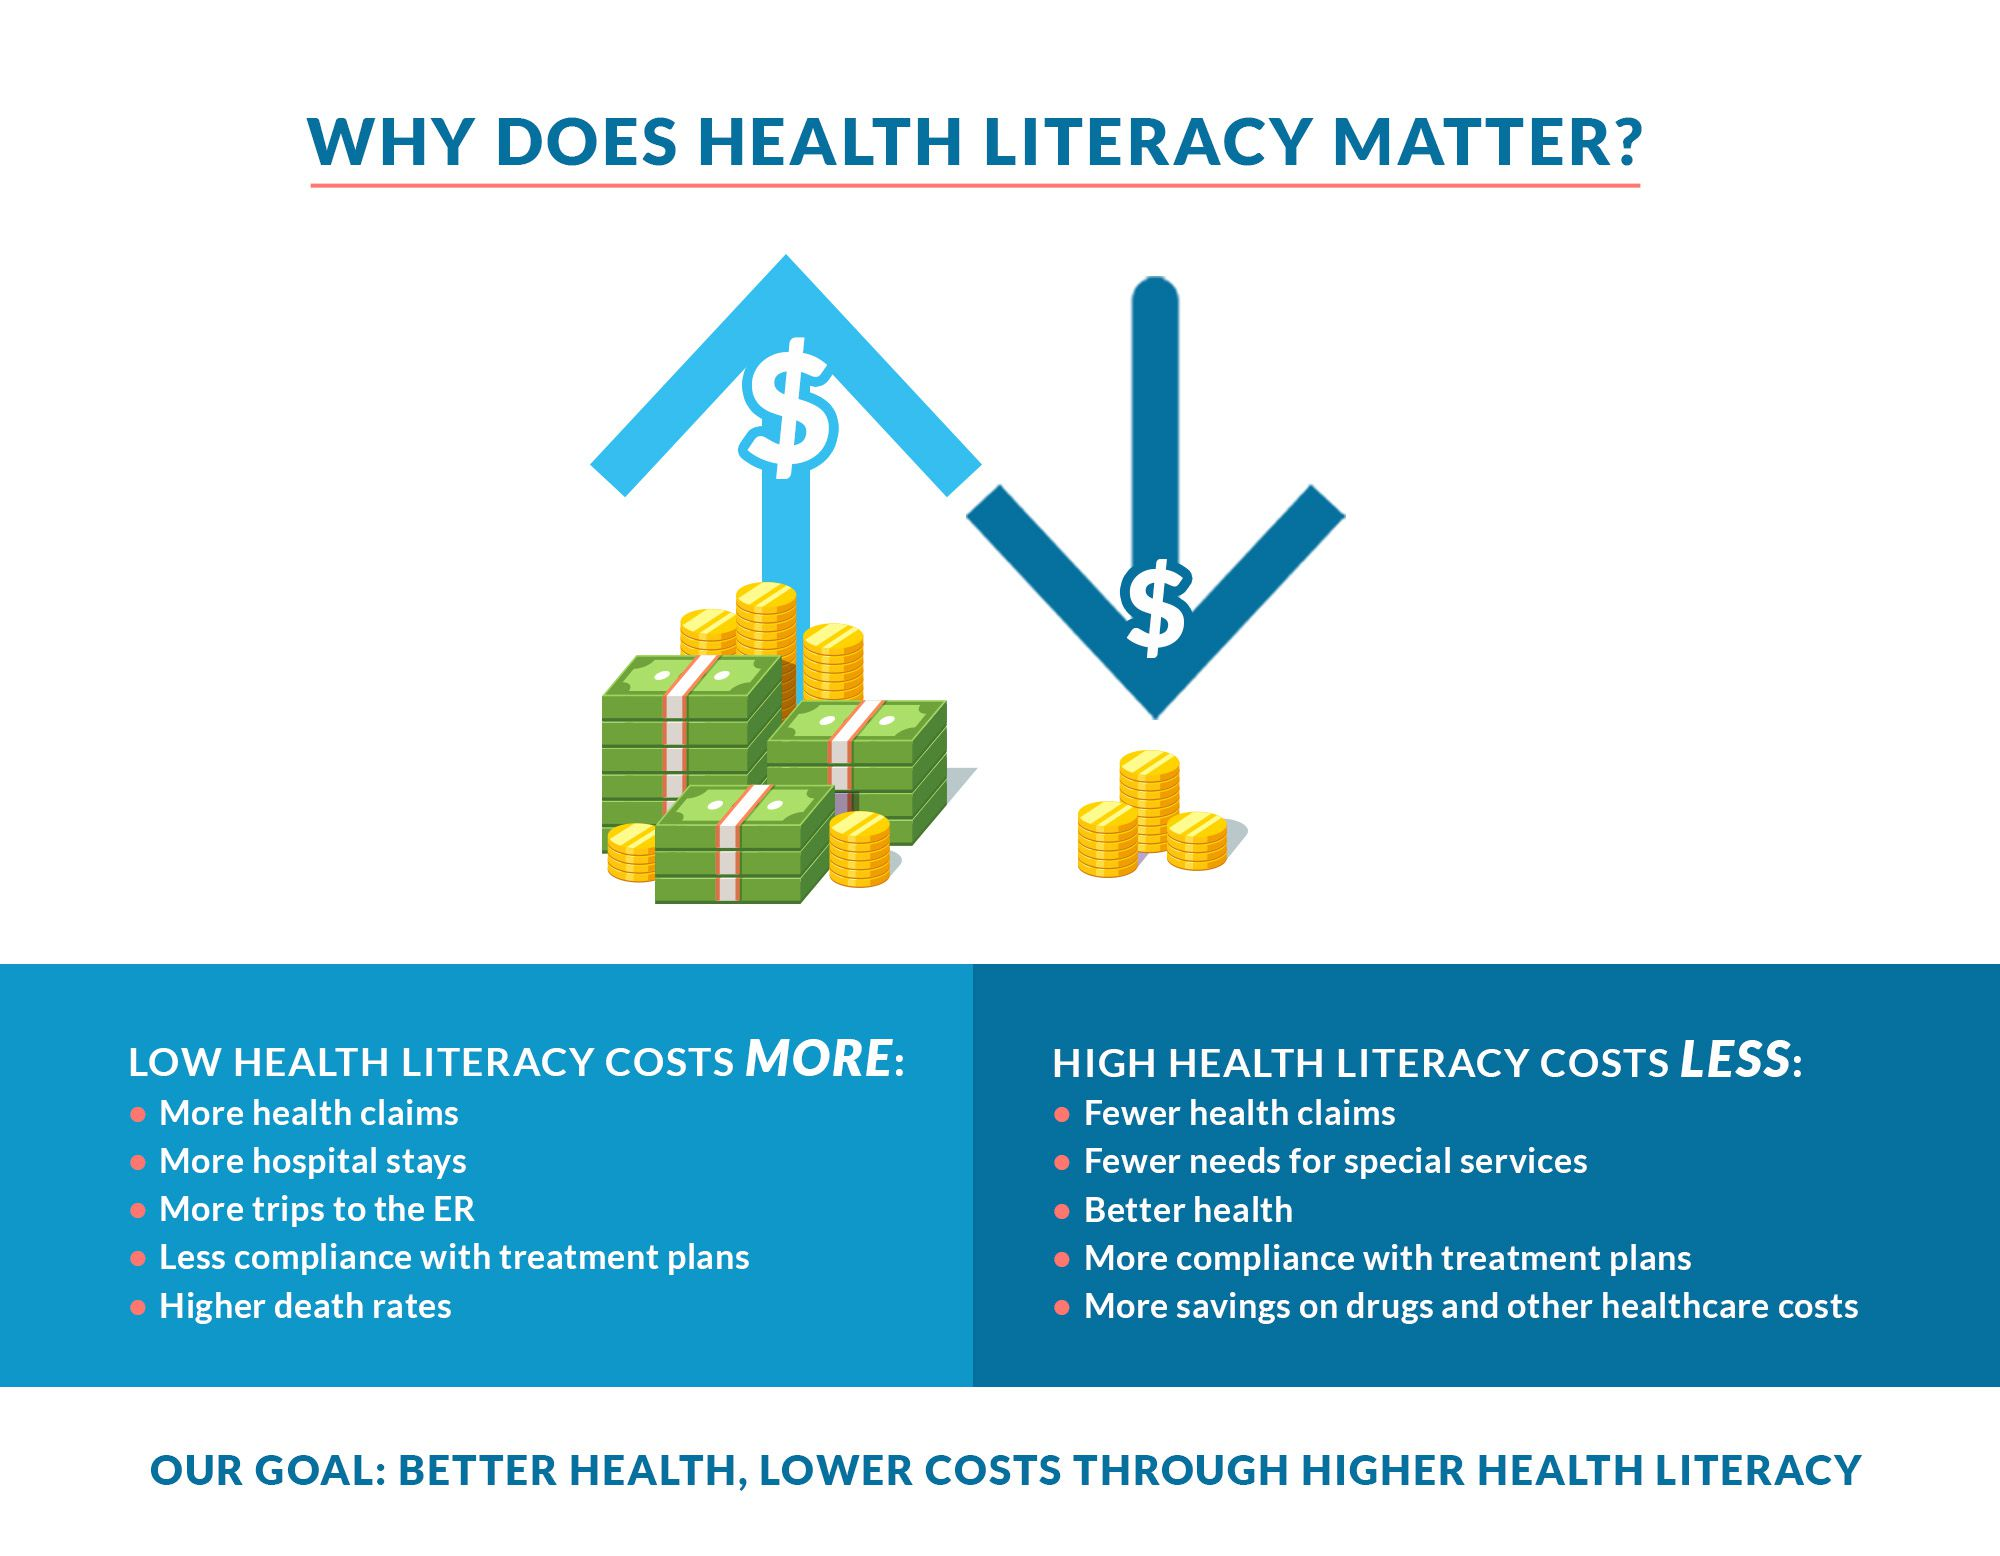 Low health literacy costs more. High health literacy costs less.